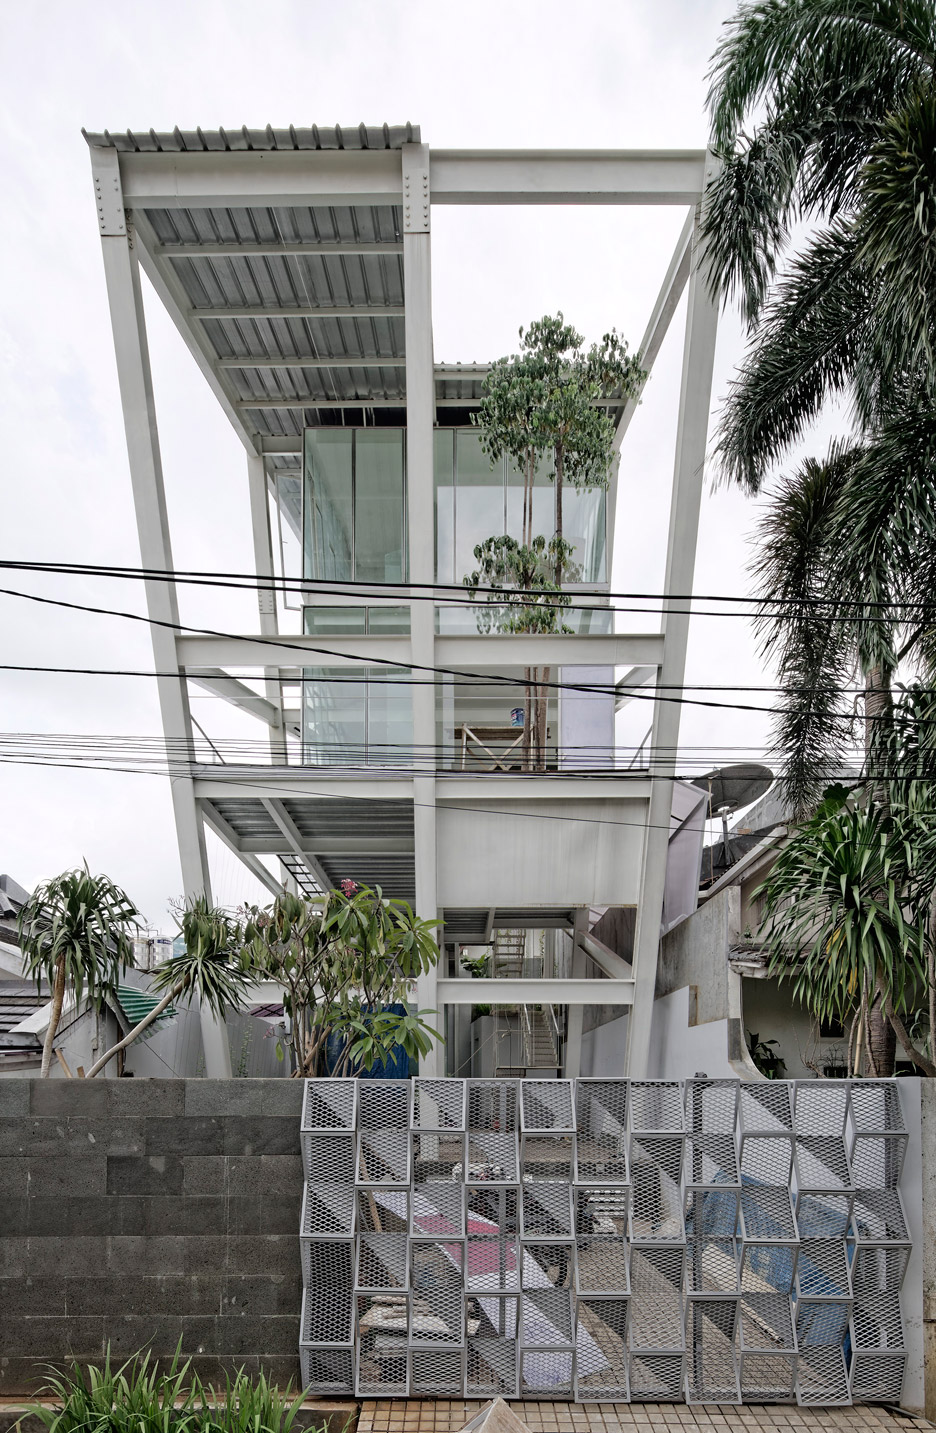 Rumah Miring by Budi Pradono Architects